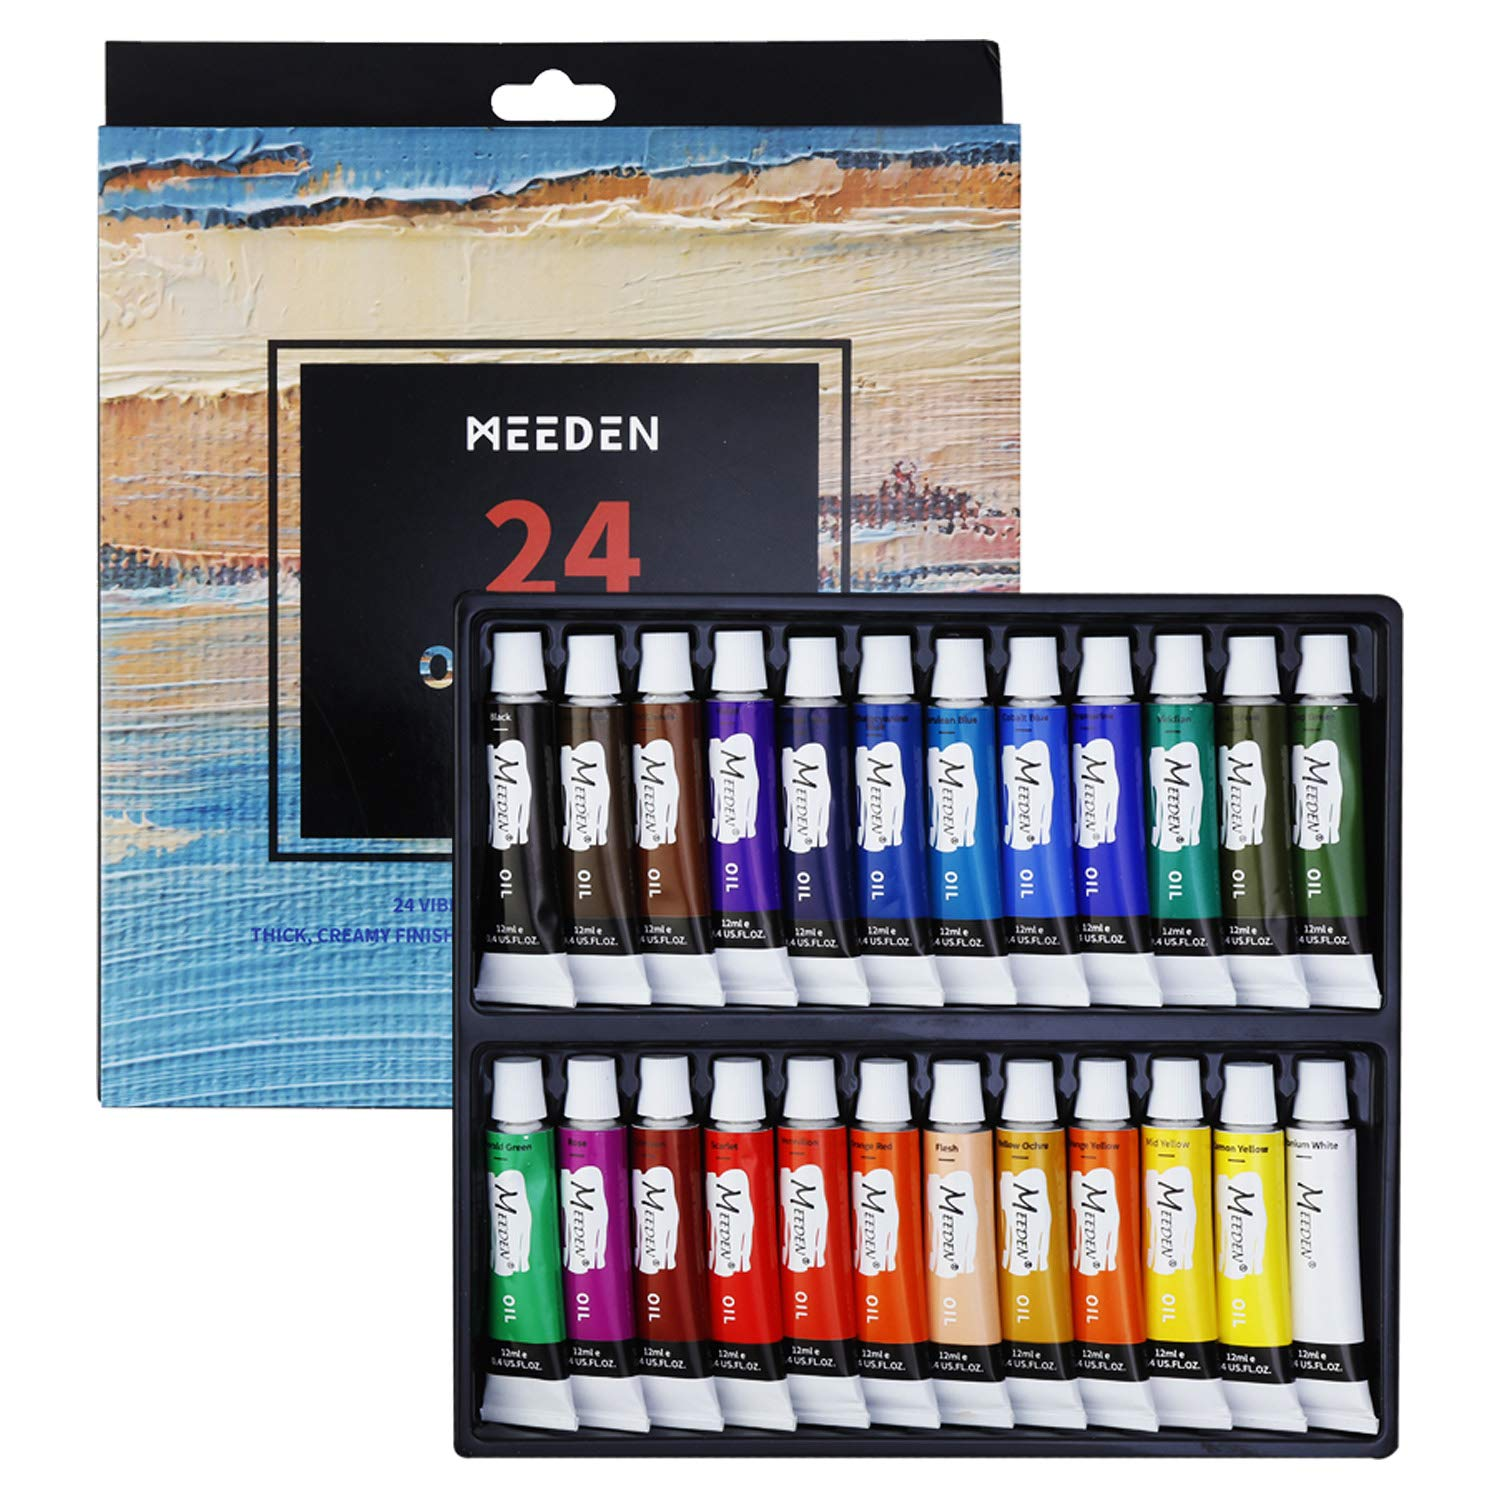 MEEDEN Oil Paint Set of 24 Tubes x 12 ml, Rich Pigments, Vibrant, Non-Toxic Paints for Kids, Students, Beginners, Hobby Painters and More